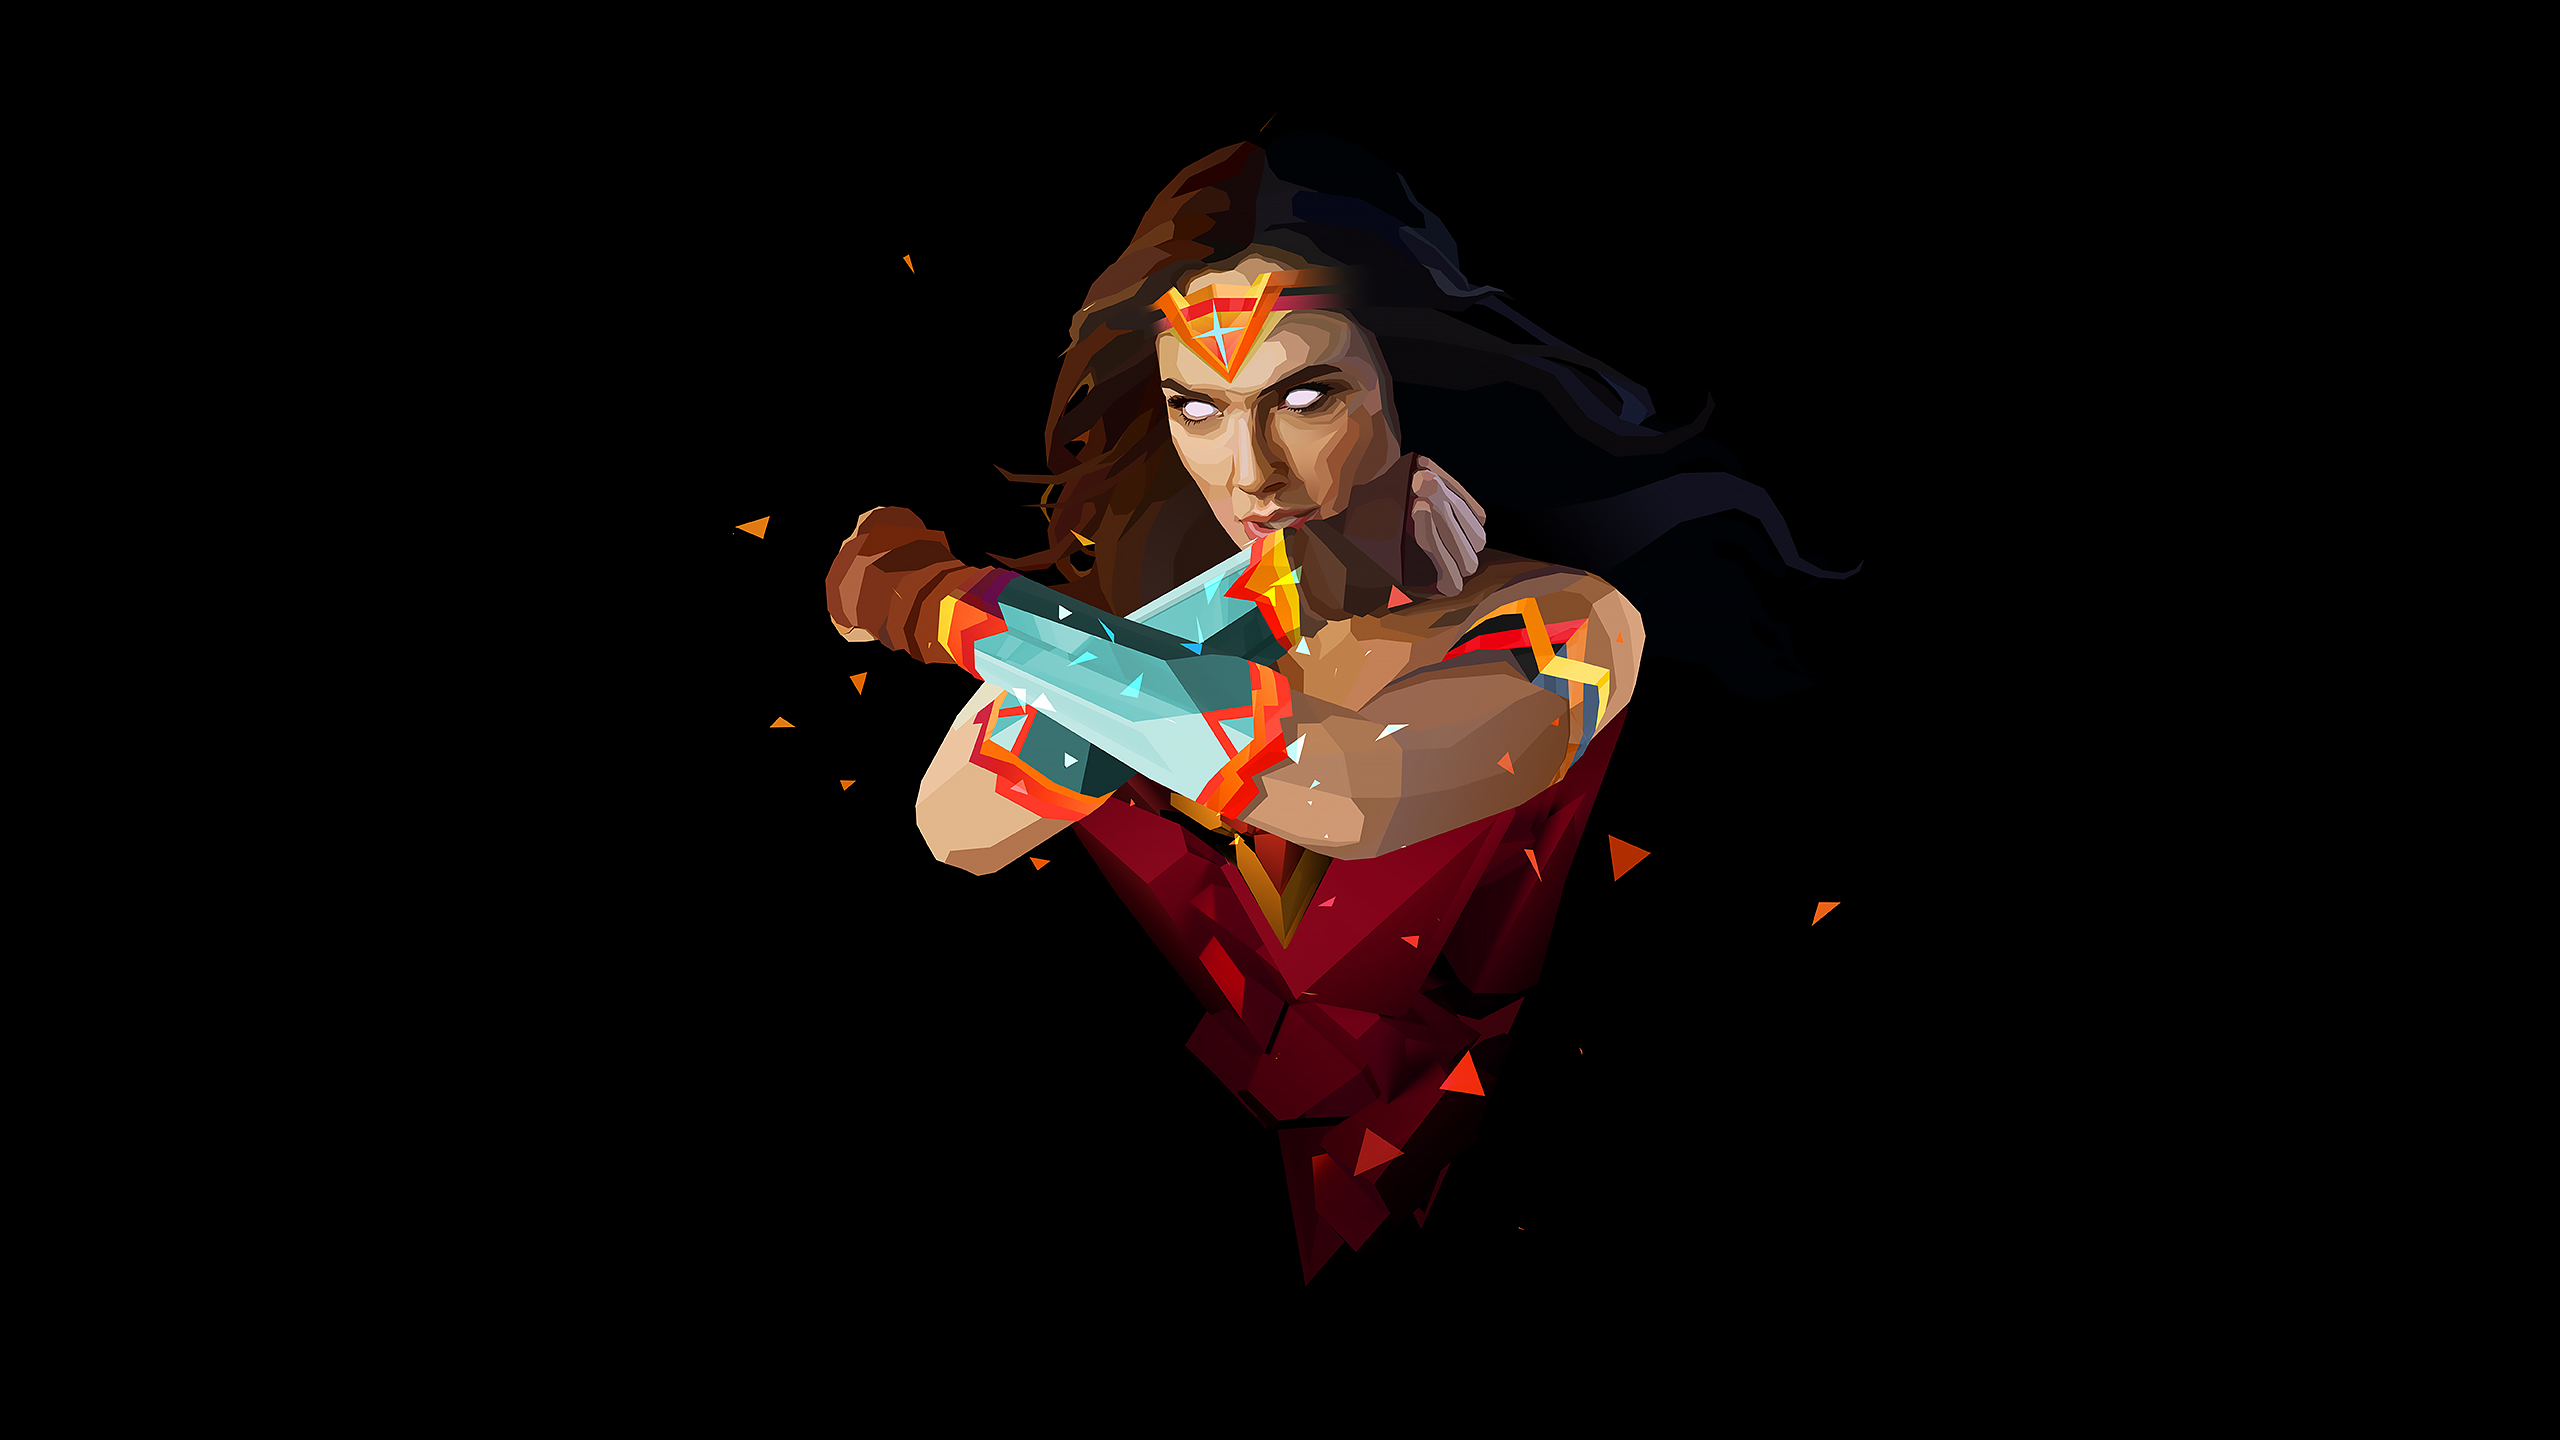 Pubg Real Girl Wallpaper: Wonder Woman Abstract Art, HD Abstract, 4k Wallpapers